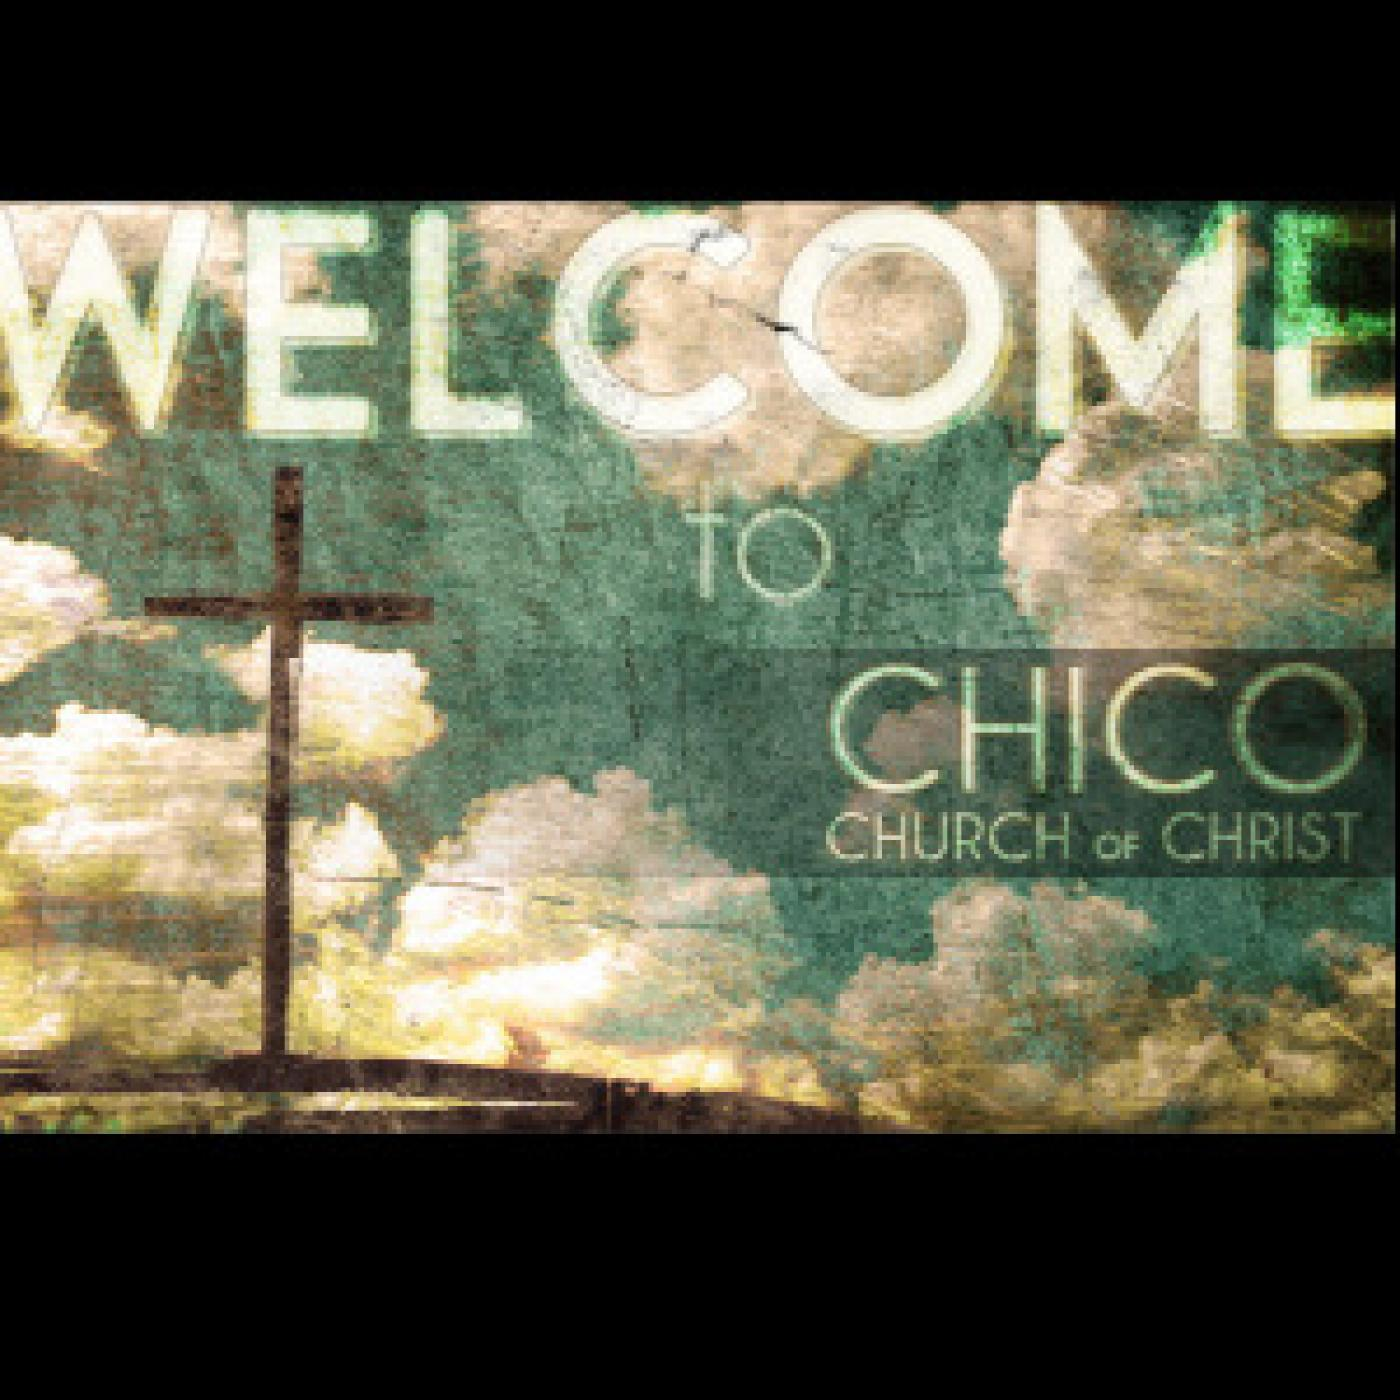 Chico Church of Christ